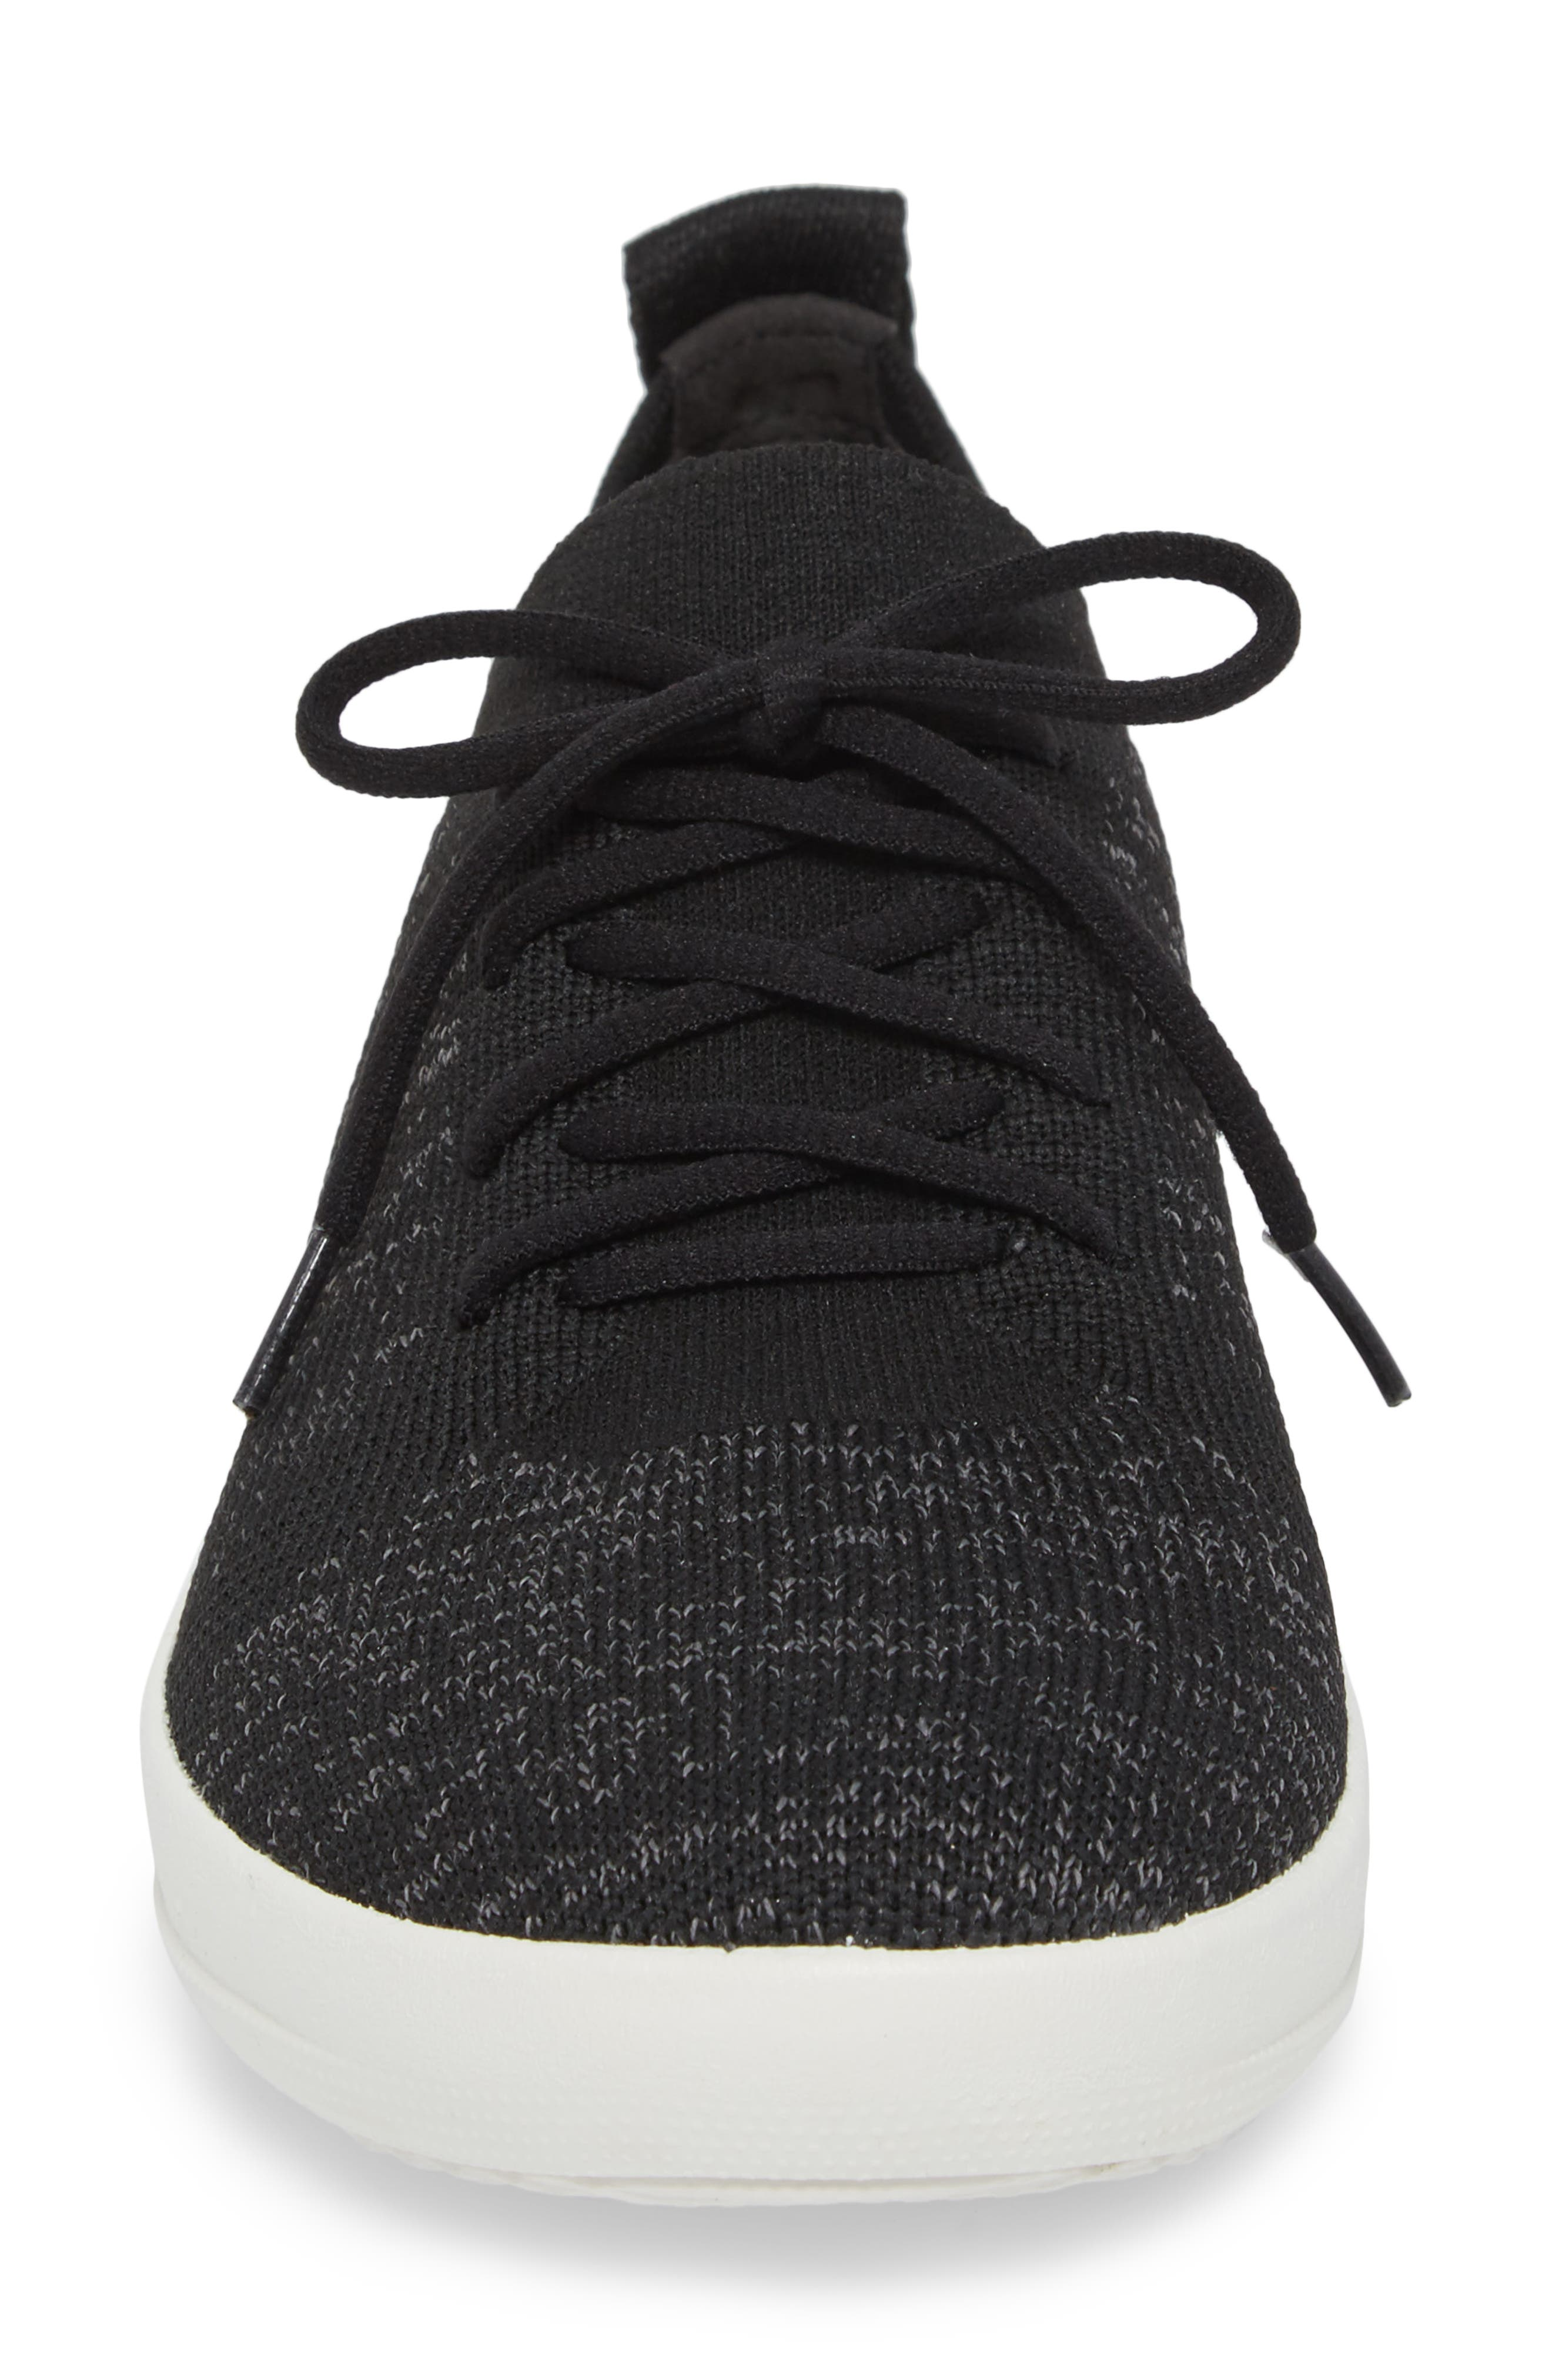 FITFLOP, F-Sporty Uberknit<sup>™</sup> Sneaker, Alternate thumbnail 4, color, BLACK